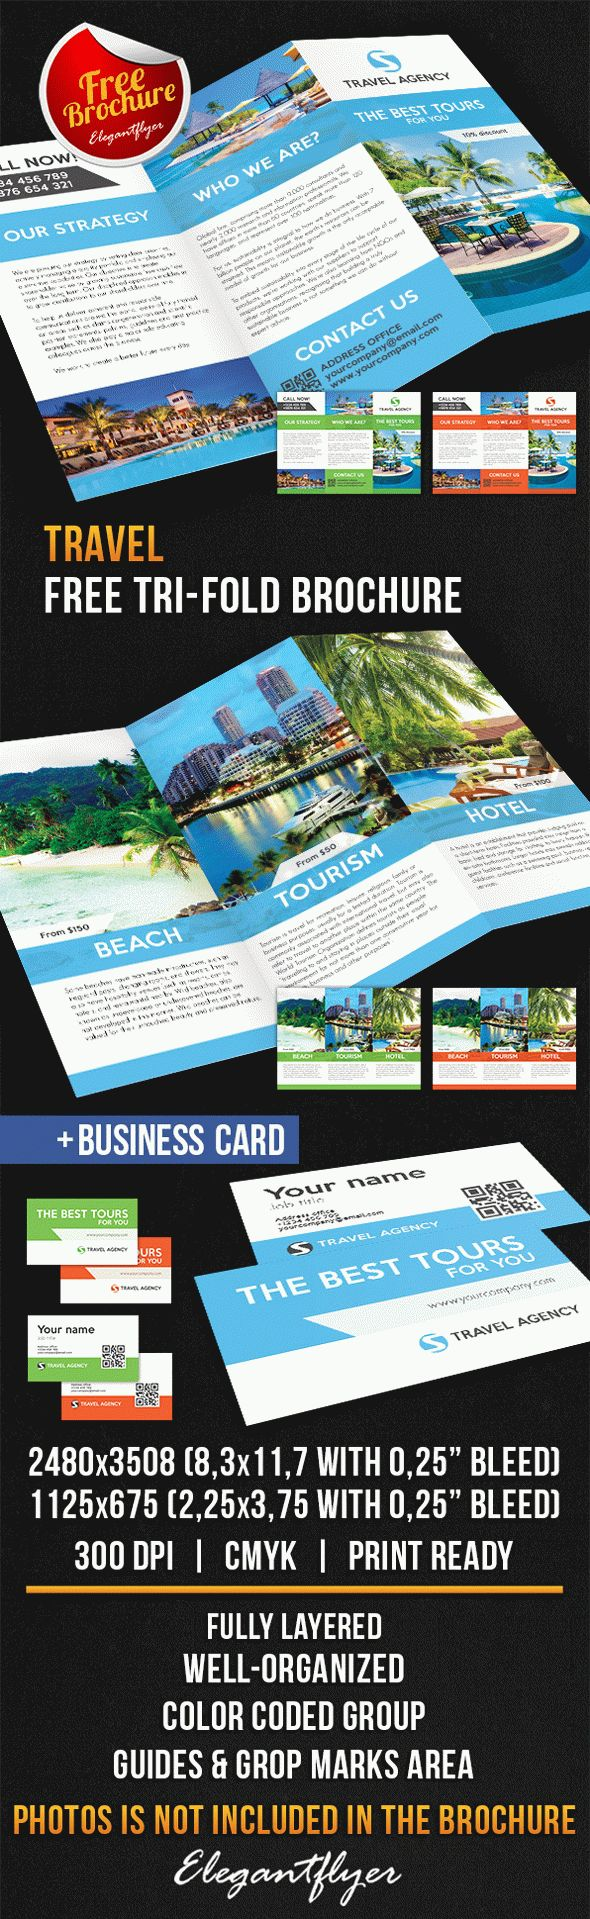 Travel tri fold brochure free psd template by elegantflyer for Free online tri fold brochure template